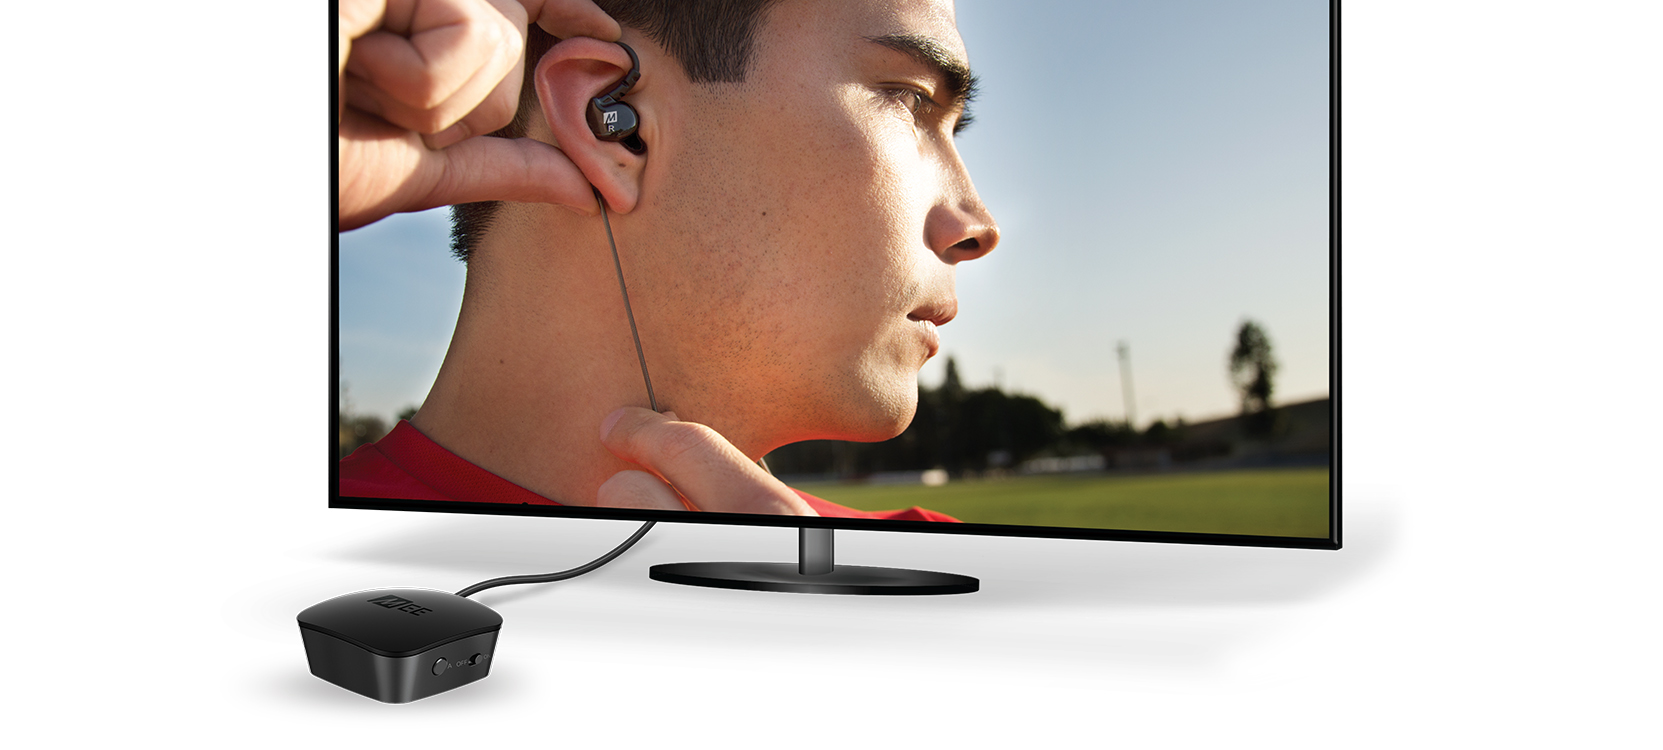 Connect Universal Dual Headphone Bluetooth Audio Transmitter For Tv No Picture And On My There Is White Noise Need To Tune The Right Frequency Way A Stranger Listen In Your Stream Simply By Having Similar